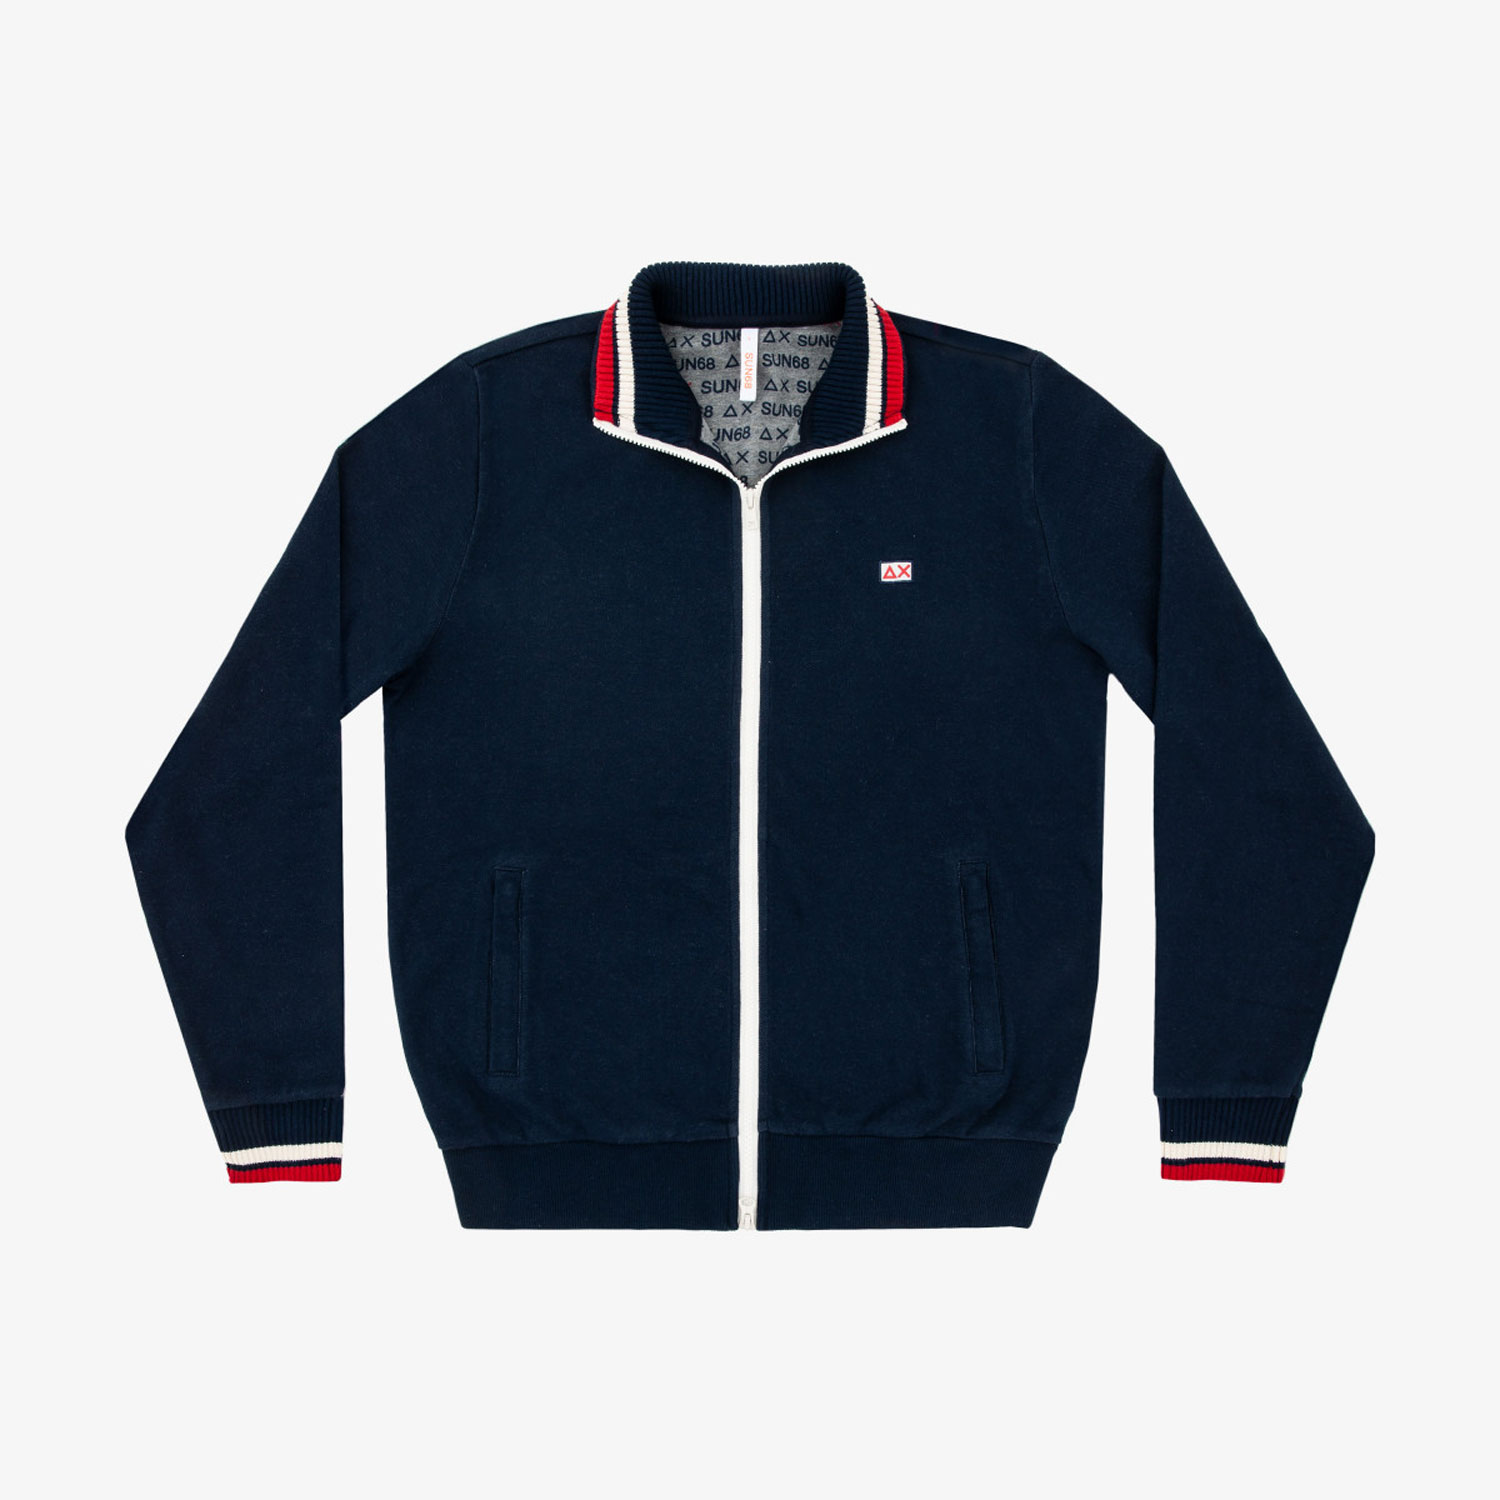 Sun68 Full Zip Heritage Cotton FL Blu Navy